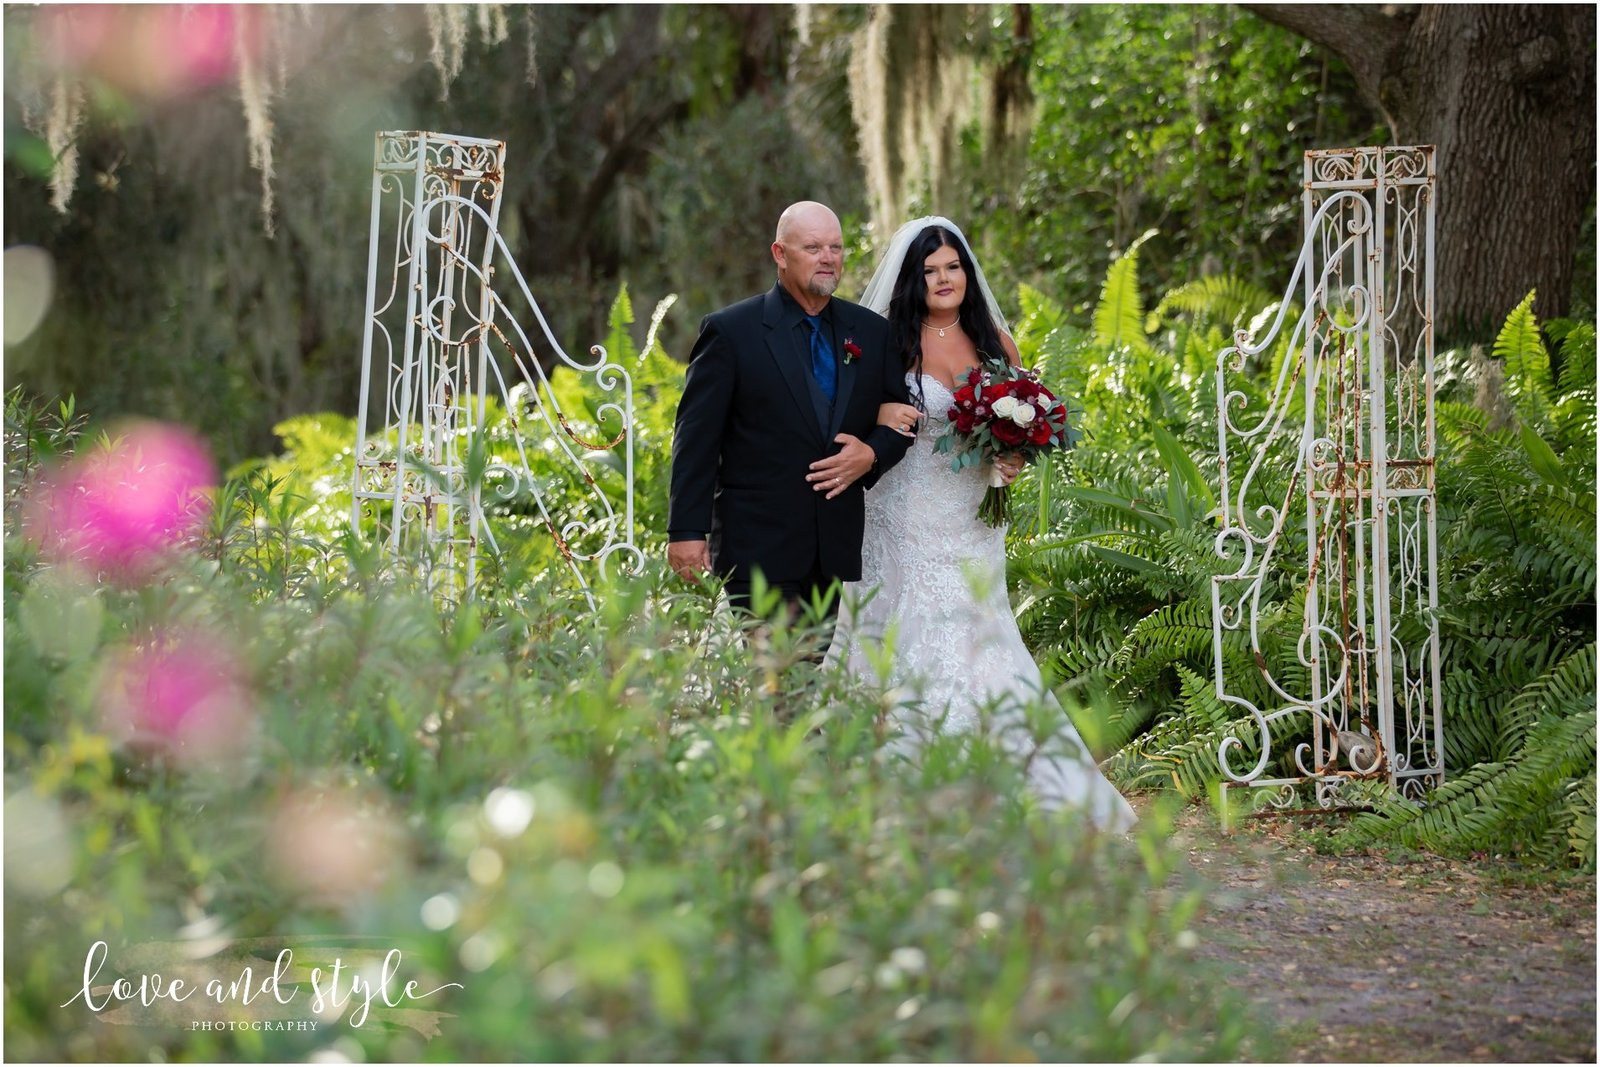 Bride walking down the aisle at The Barn at Chapel Creek, Sarasota Florida